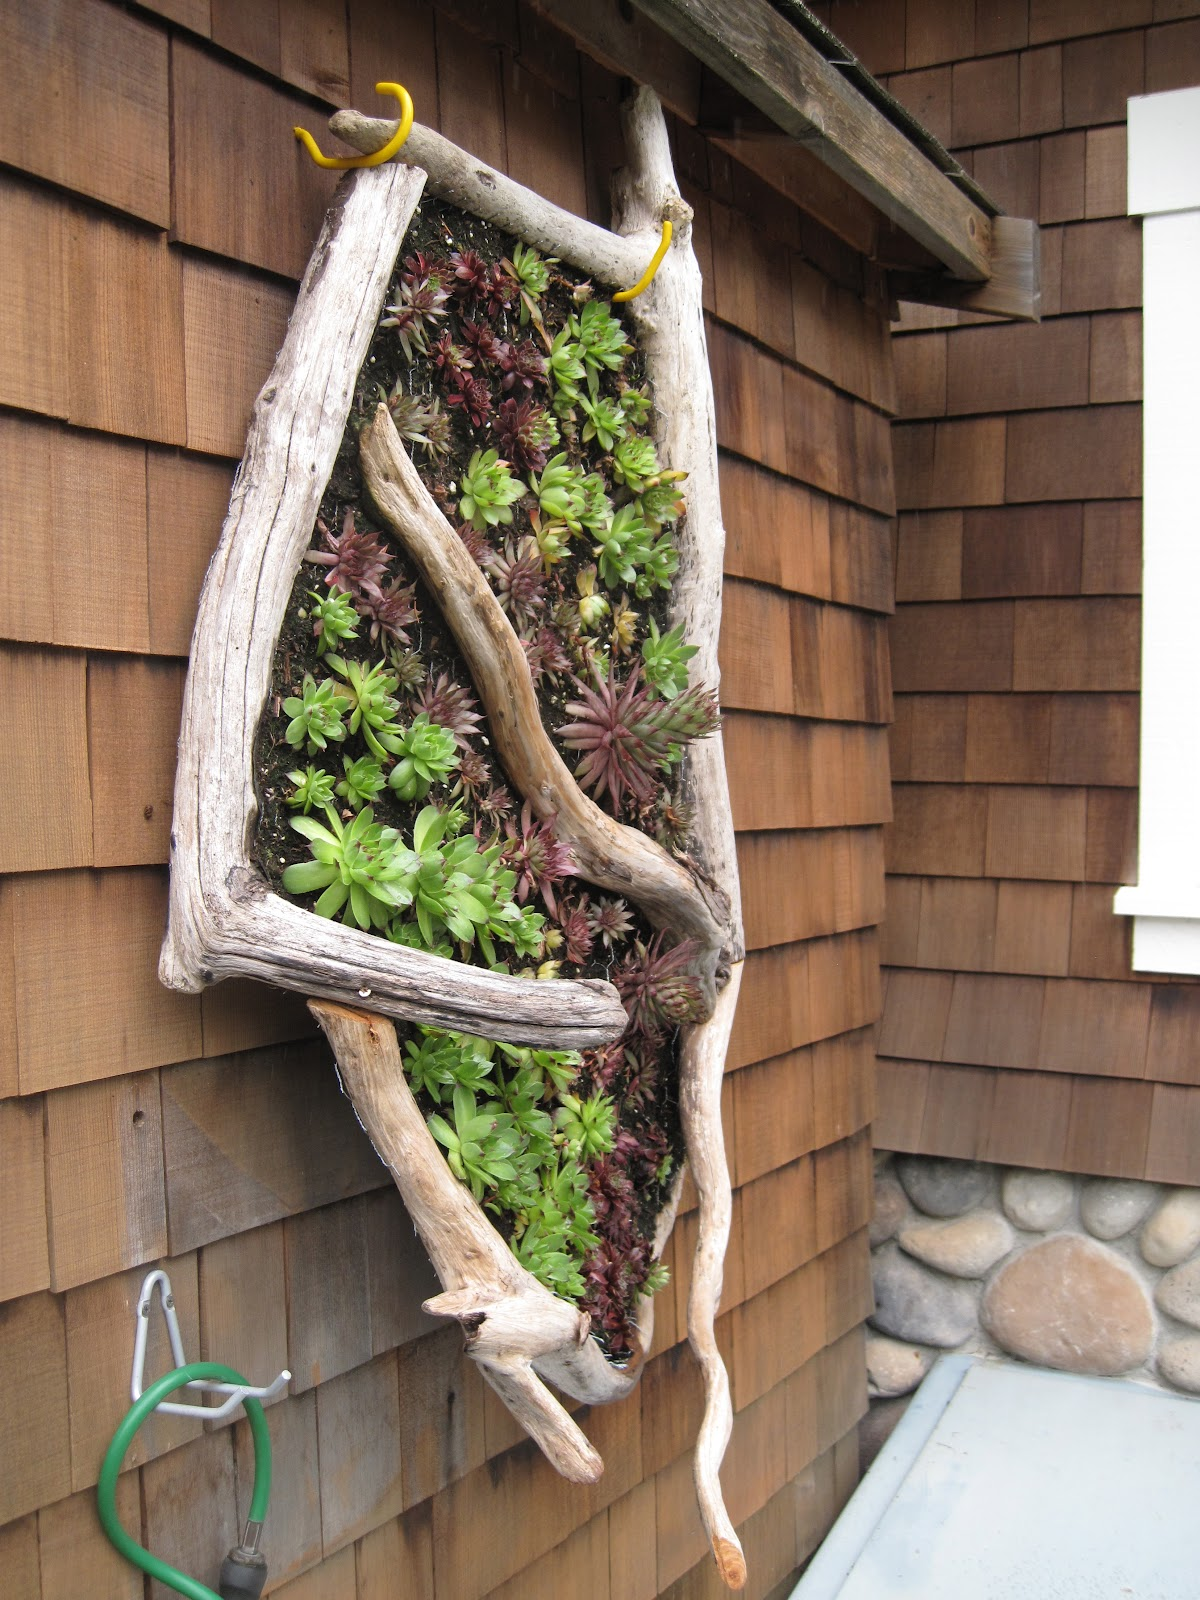 Vertical Gardening Ideas frame a patio space with a beautiful hanging garden A Vertical Garden Idea For A Seaside Cottage